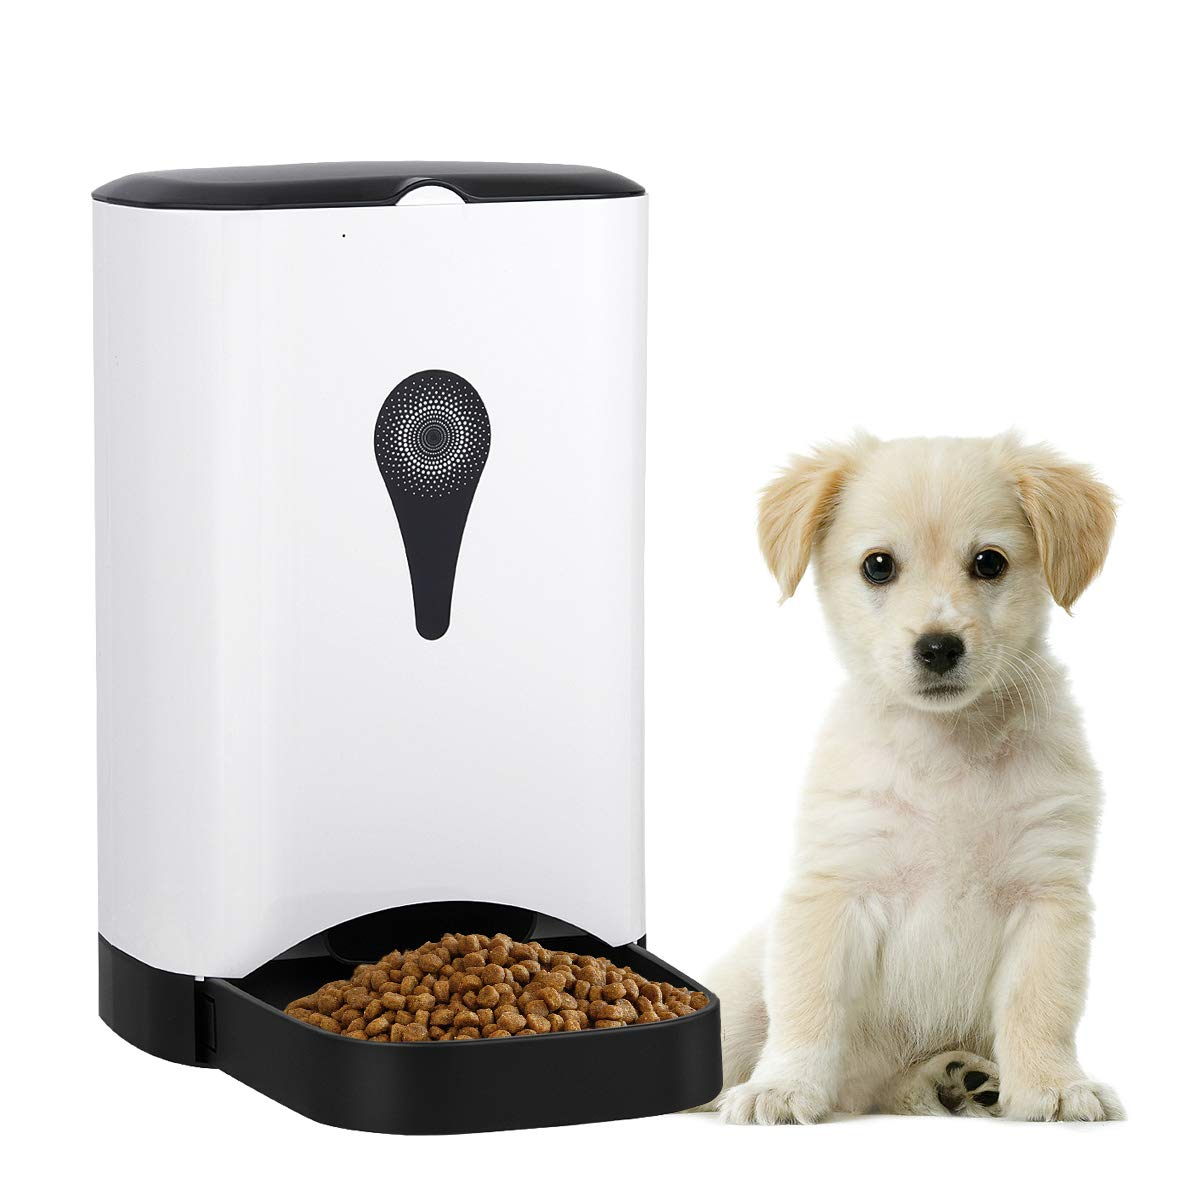 Giantex Automatic Pet Feeder Food Dispenser for Dogs, Cats & Small Animals, Distribution Alarms, Portion Control & Voice Recording Control Food Dispenser, 4.5 L Large Capacity W/Anti-Slip Foot Design